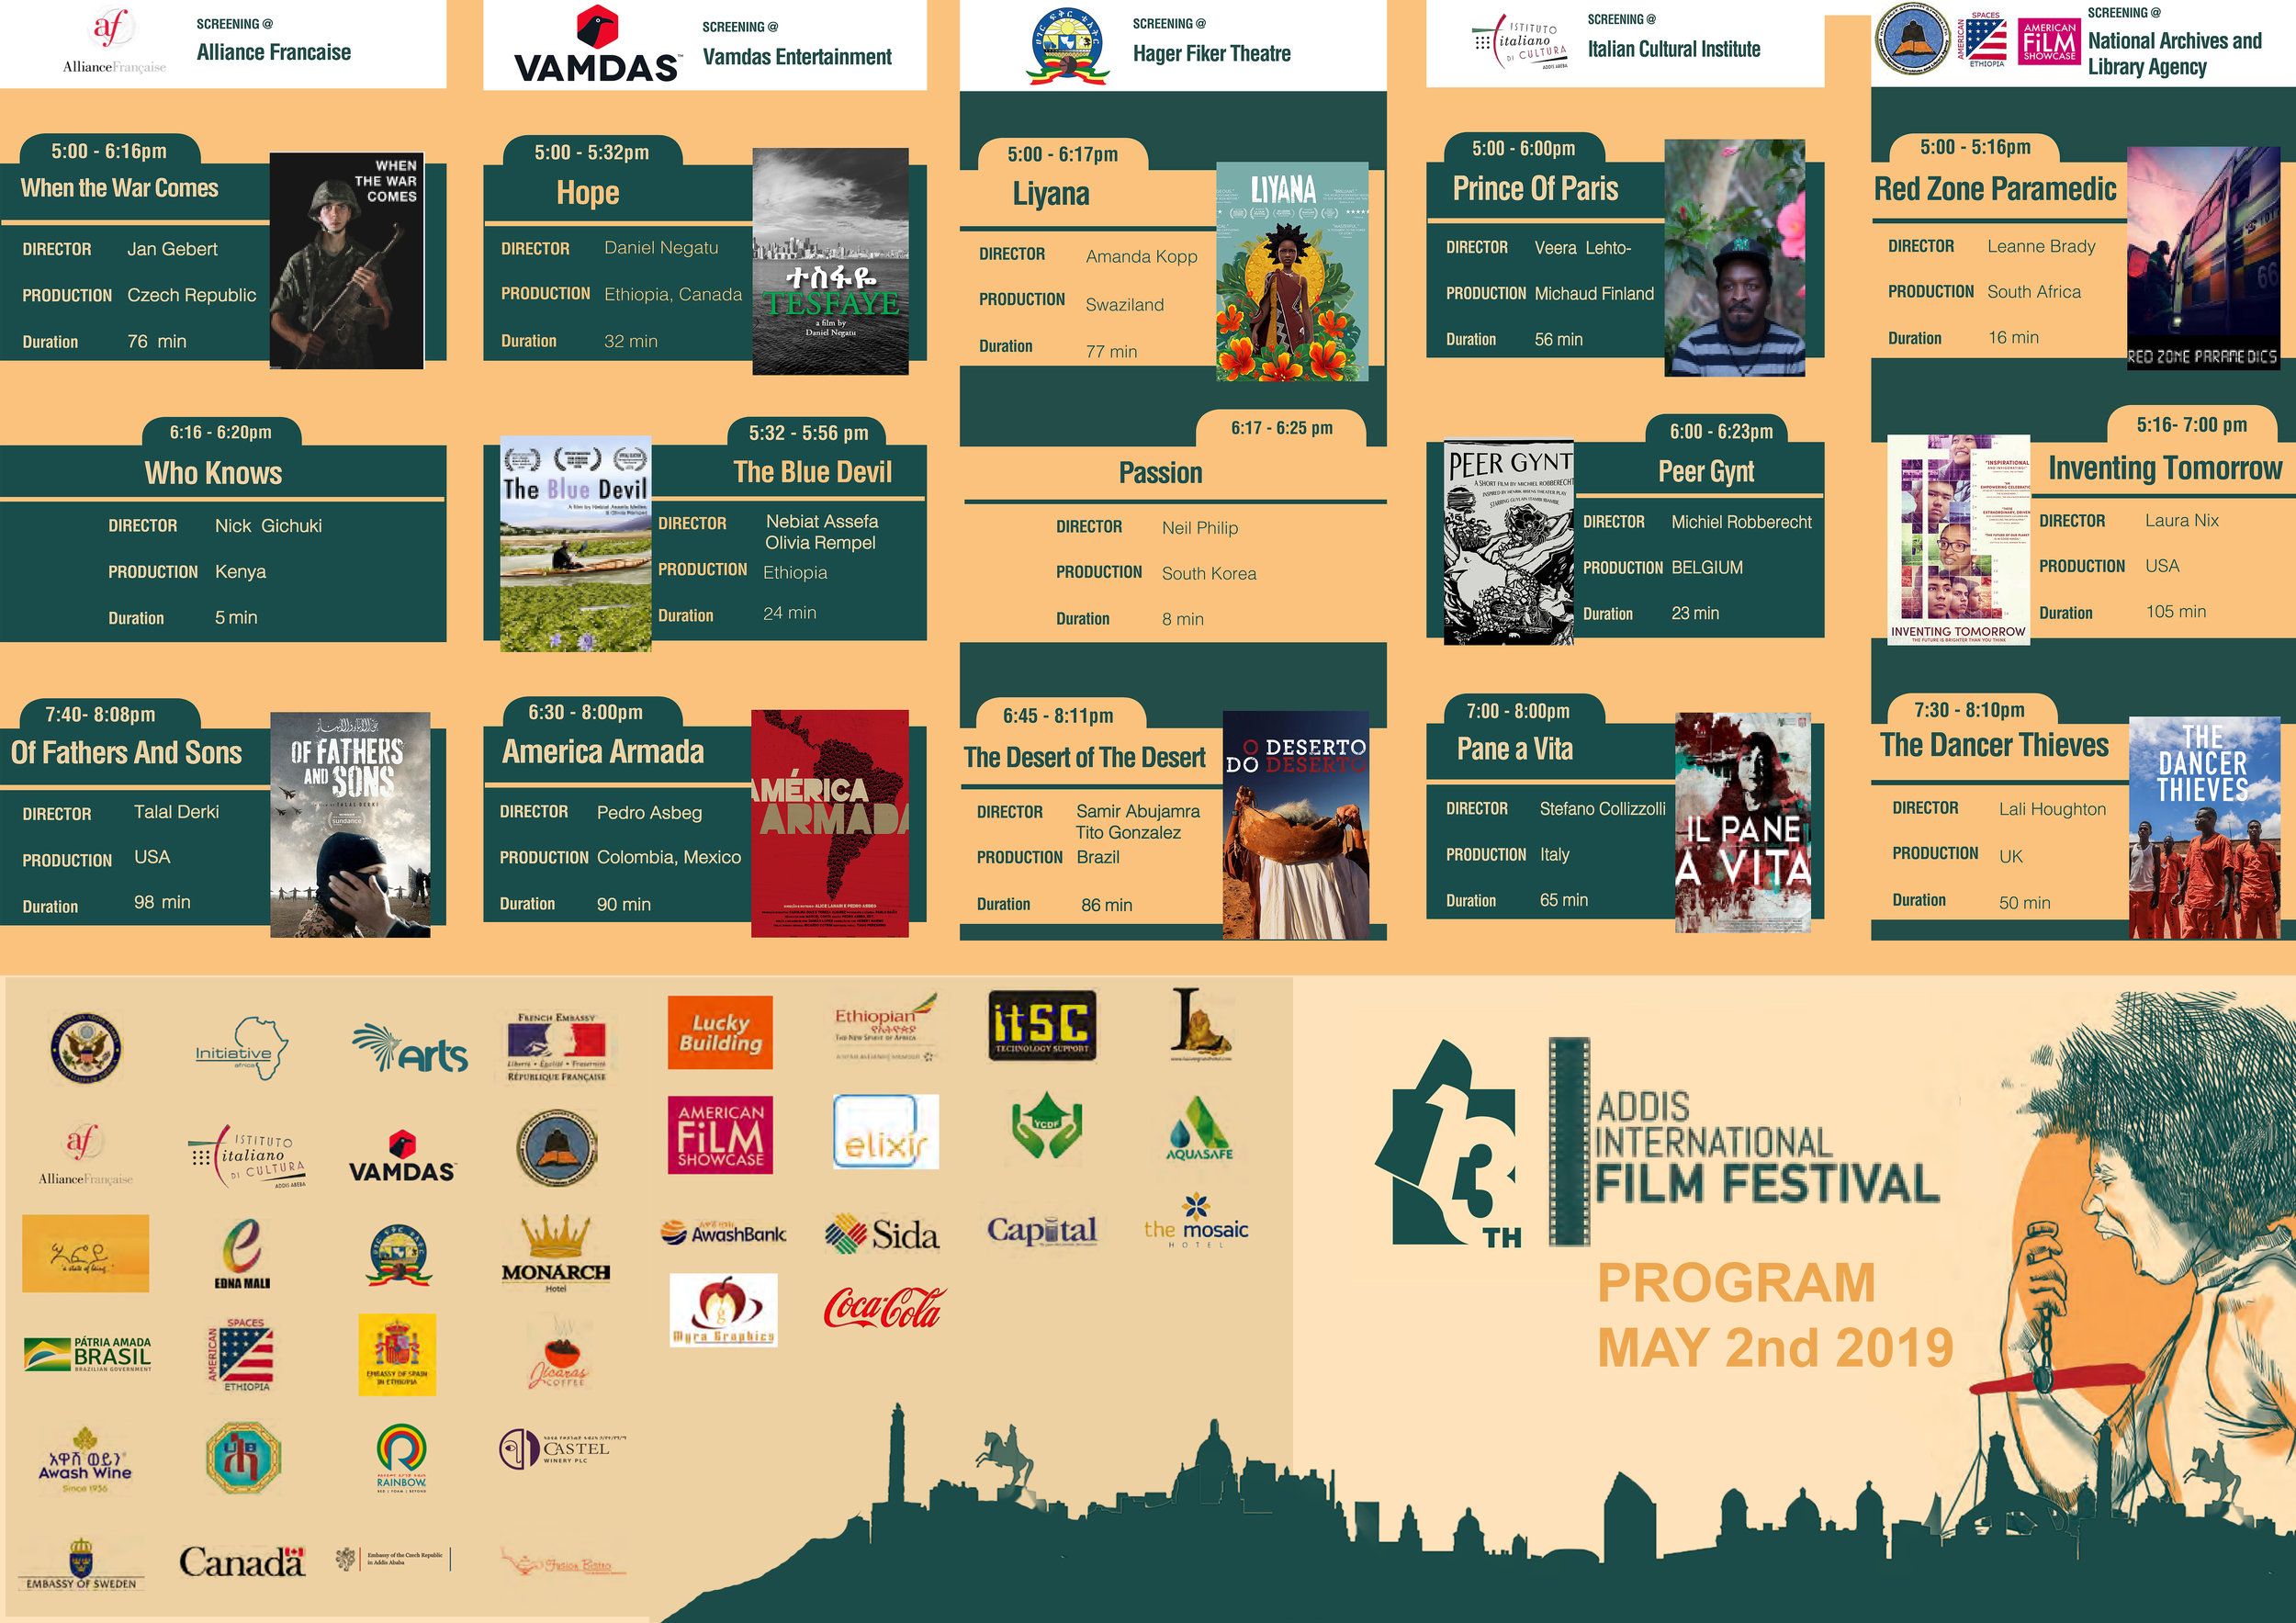 AIFF 2019 - Film Schedule - MAY 2nd.jpg